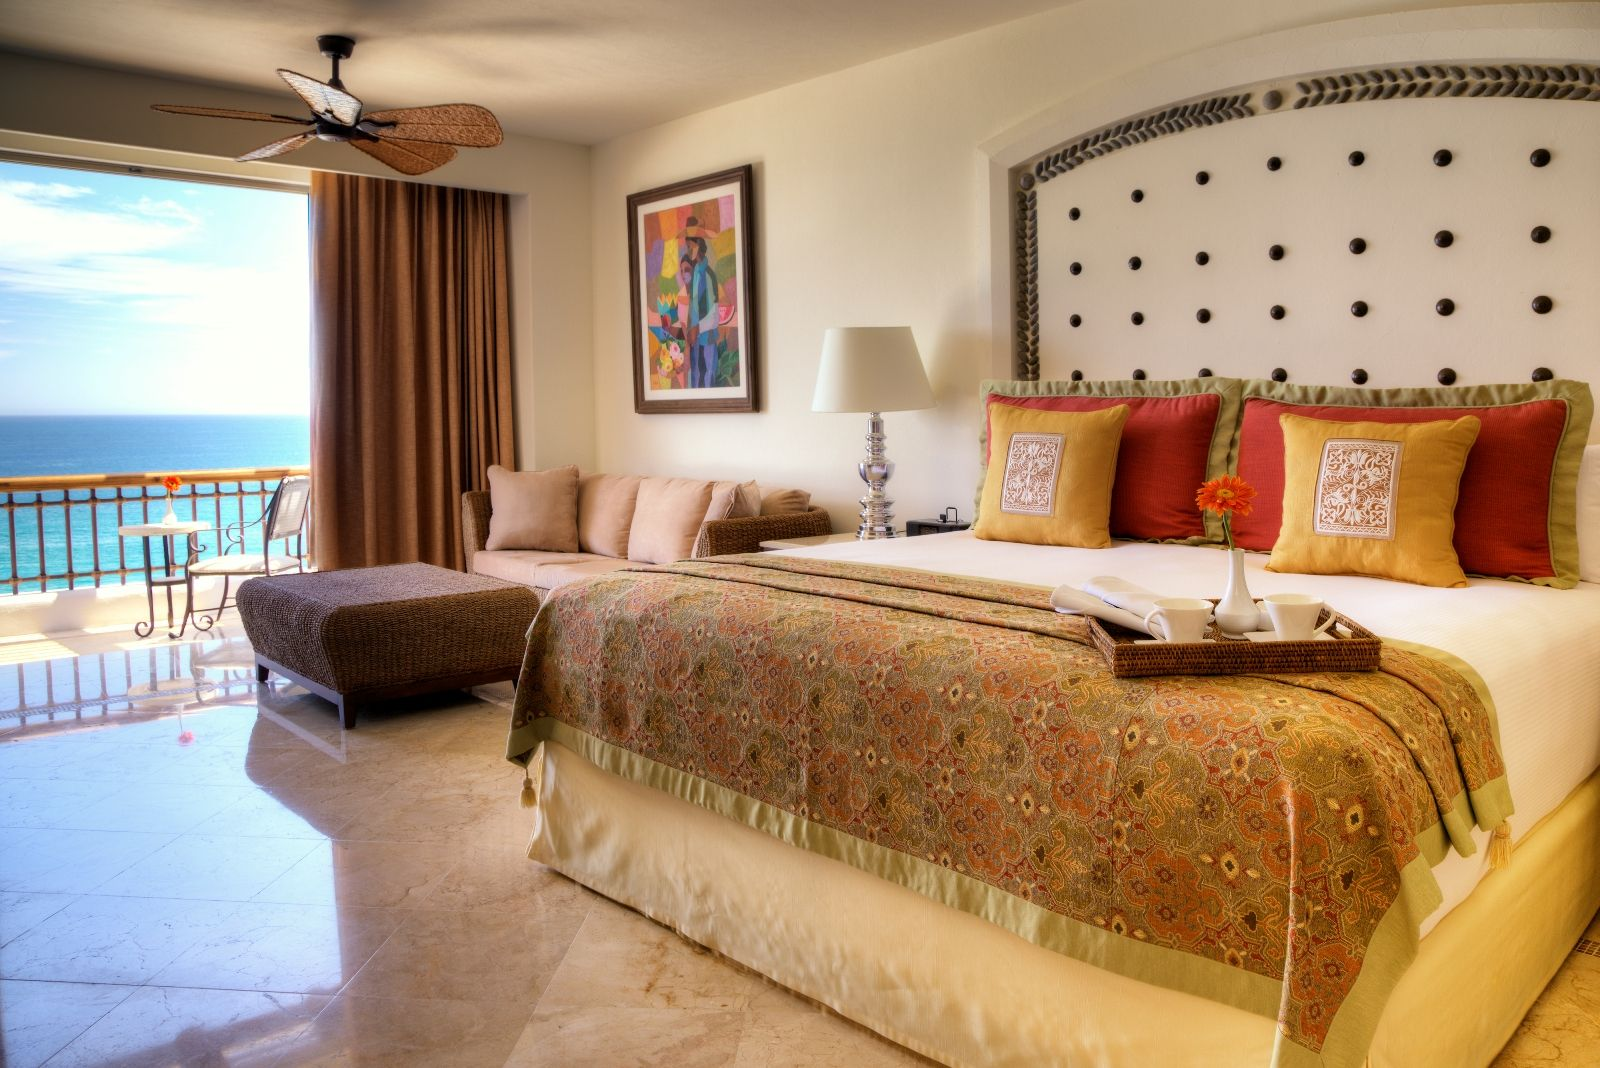 Presidential Suite bedroom with balcony